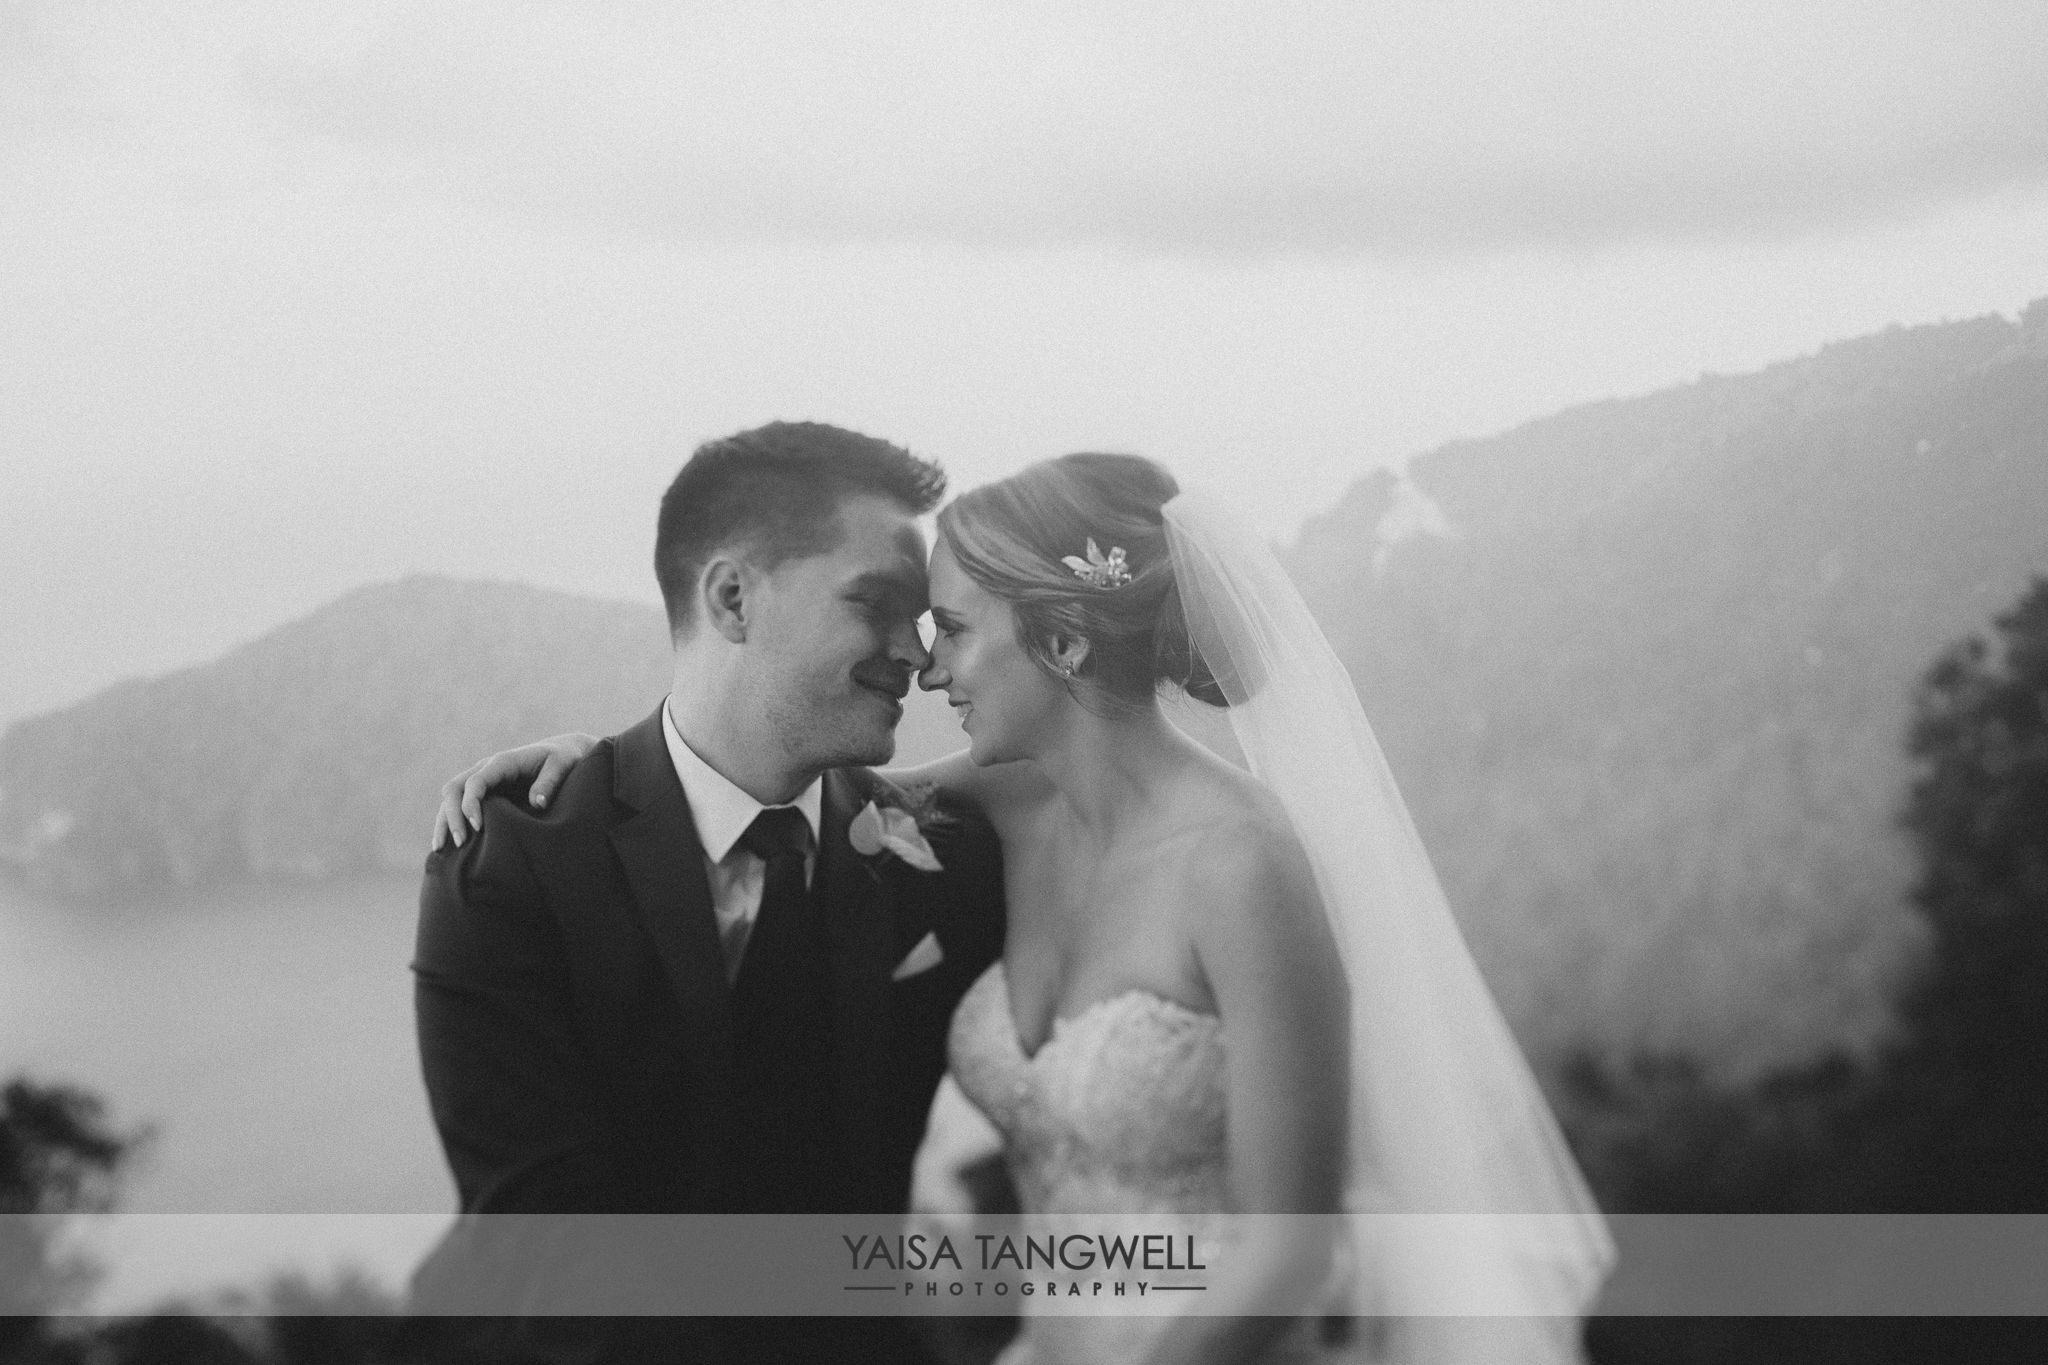 Kacey + Kai wedding in Trinidad and Tobago